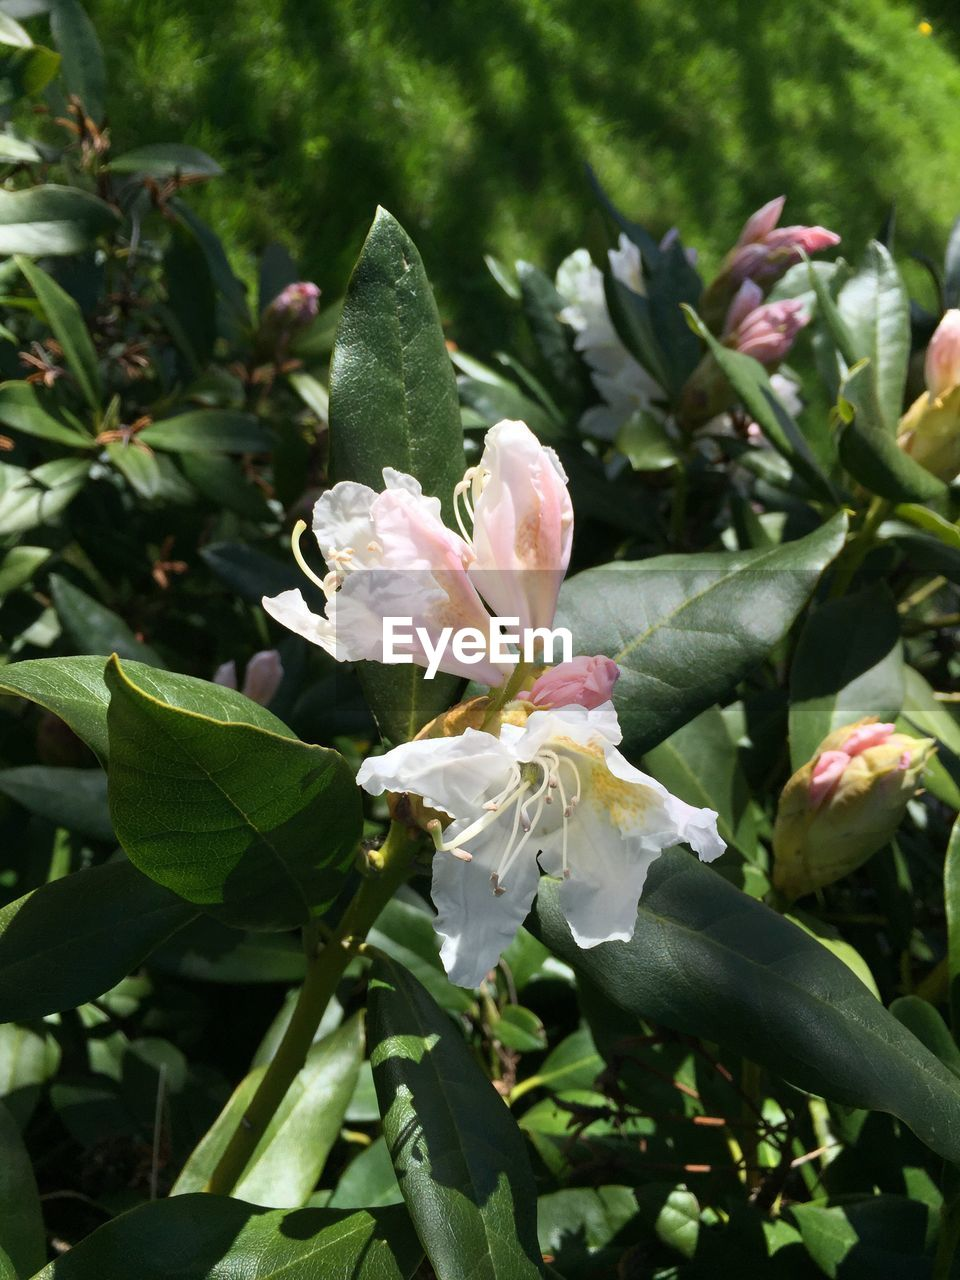 growth, beauty in nature, plant, flower, flowering plant, freshness, petal, close-up, vulnerability, fragility, leaf, plant part, flower head, no people, inflorescence, day, nature, green color, focus on foreground, white color, outdoors, pollen